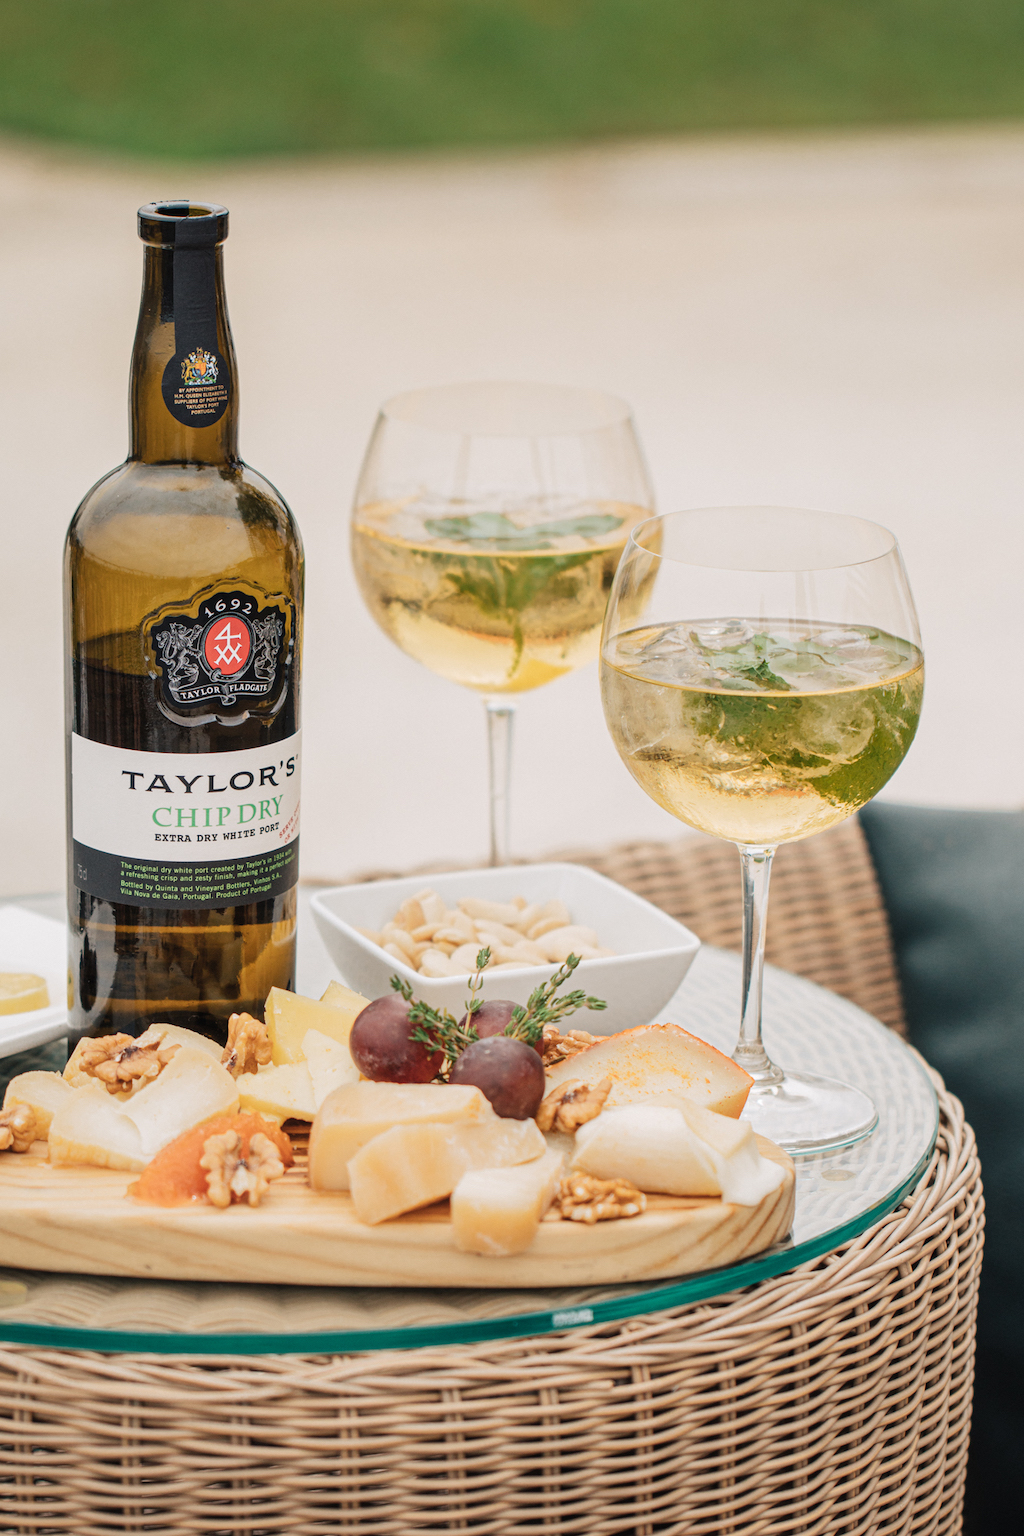 Taylor's Porto Dry and Tonic